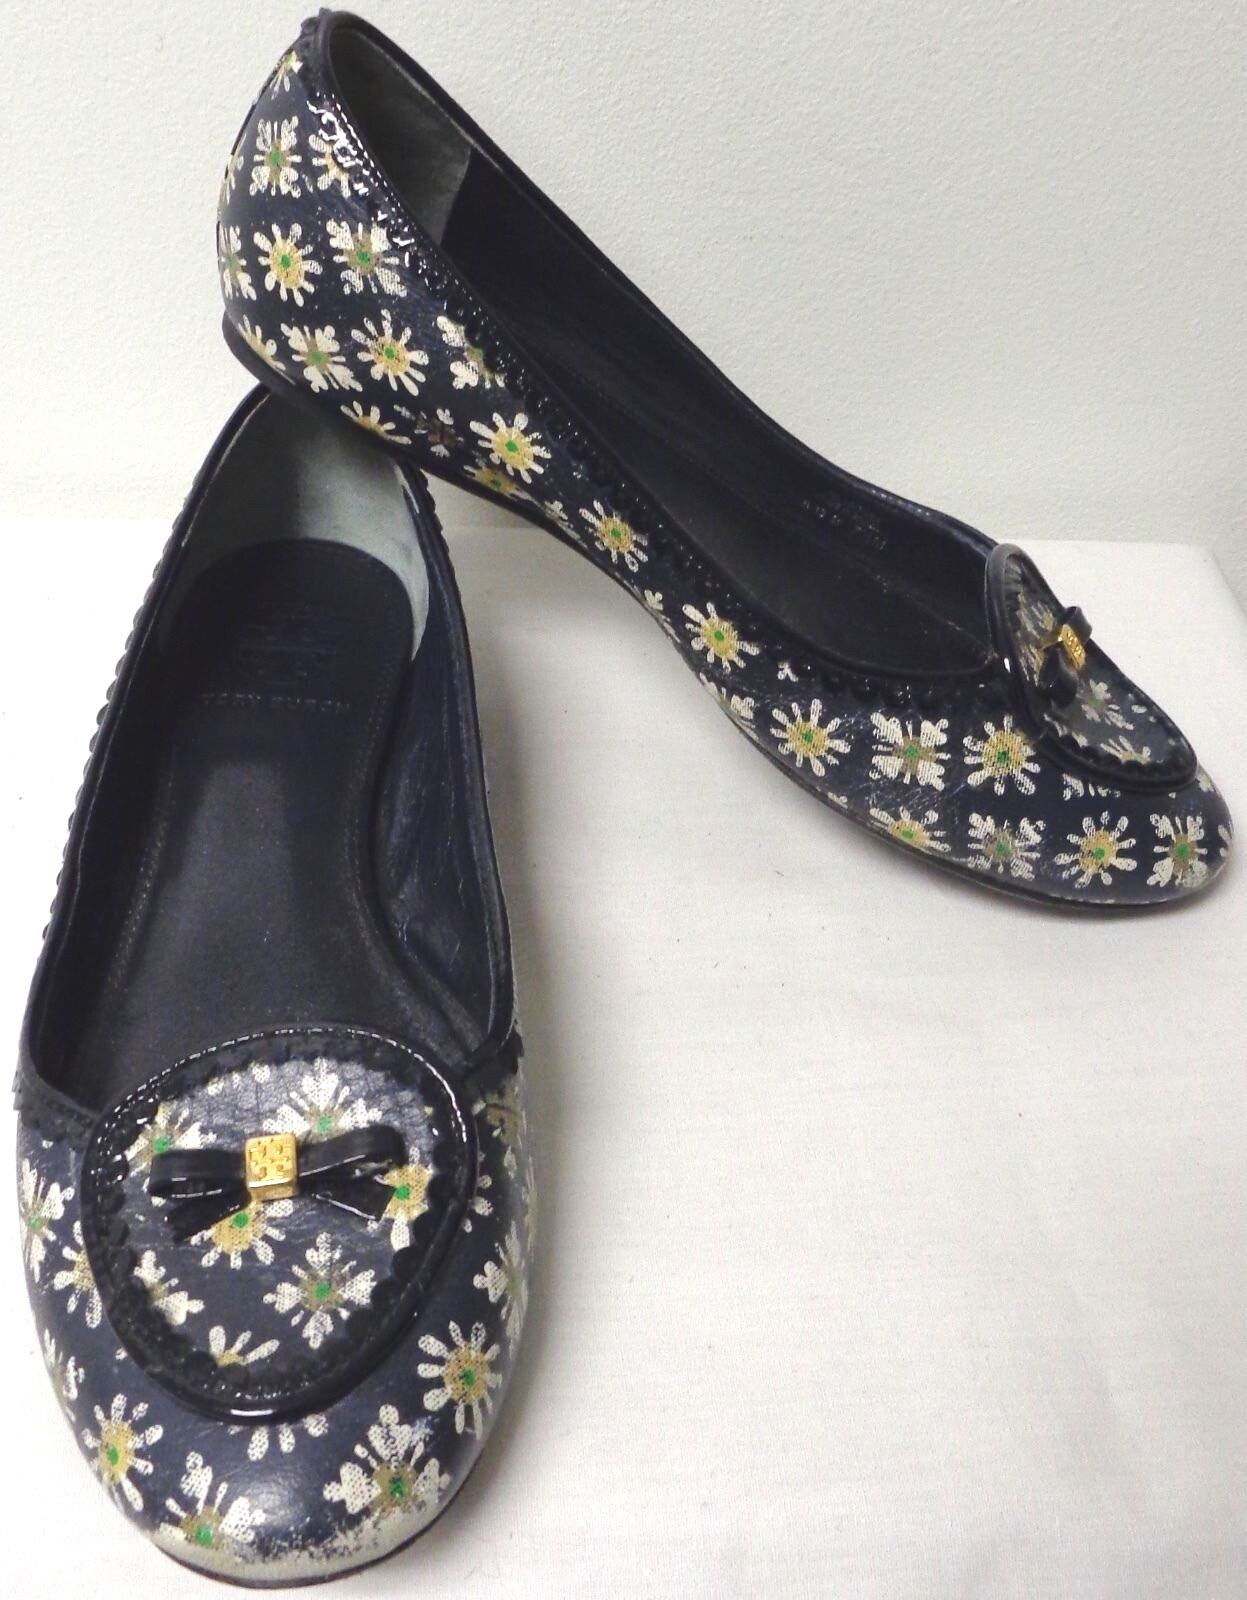 TORY BURCH NAVY Blau W WEISS LEATHER & YELLOW DAISY FLOWERS LEATHER WEISS BALLET FLATS 7.5 M a1ad95